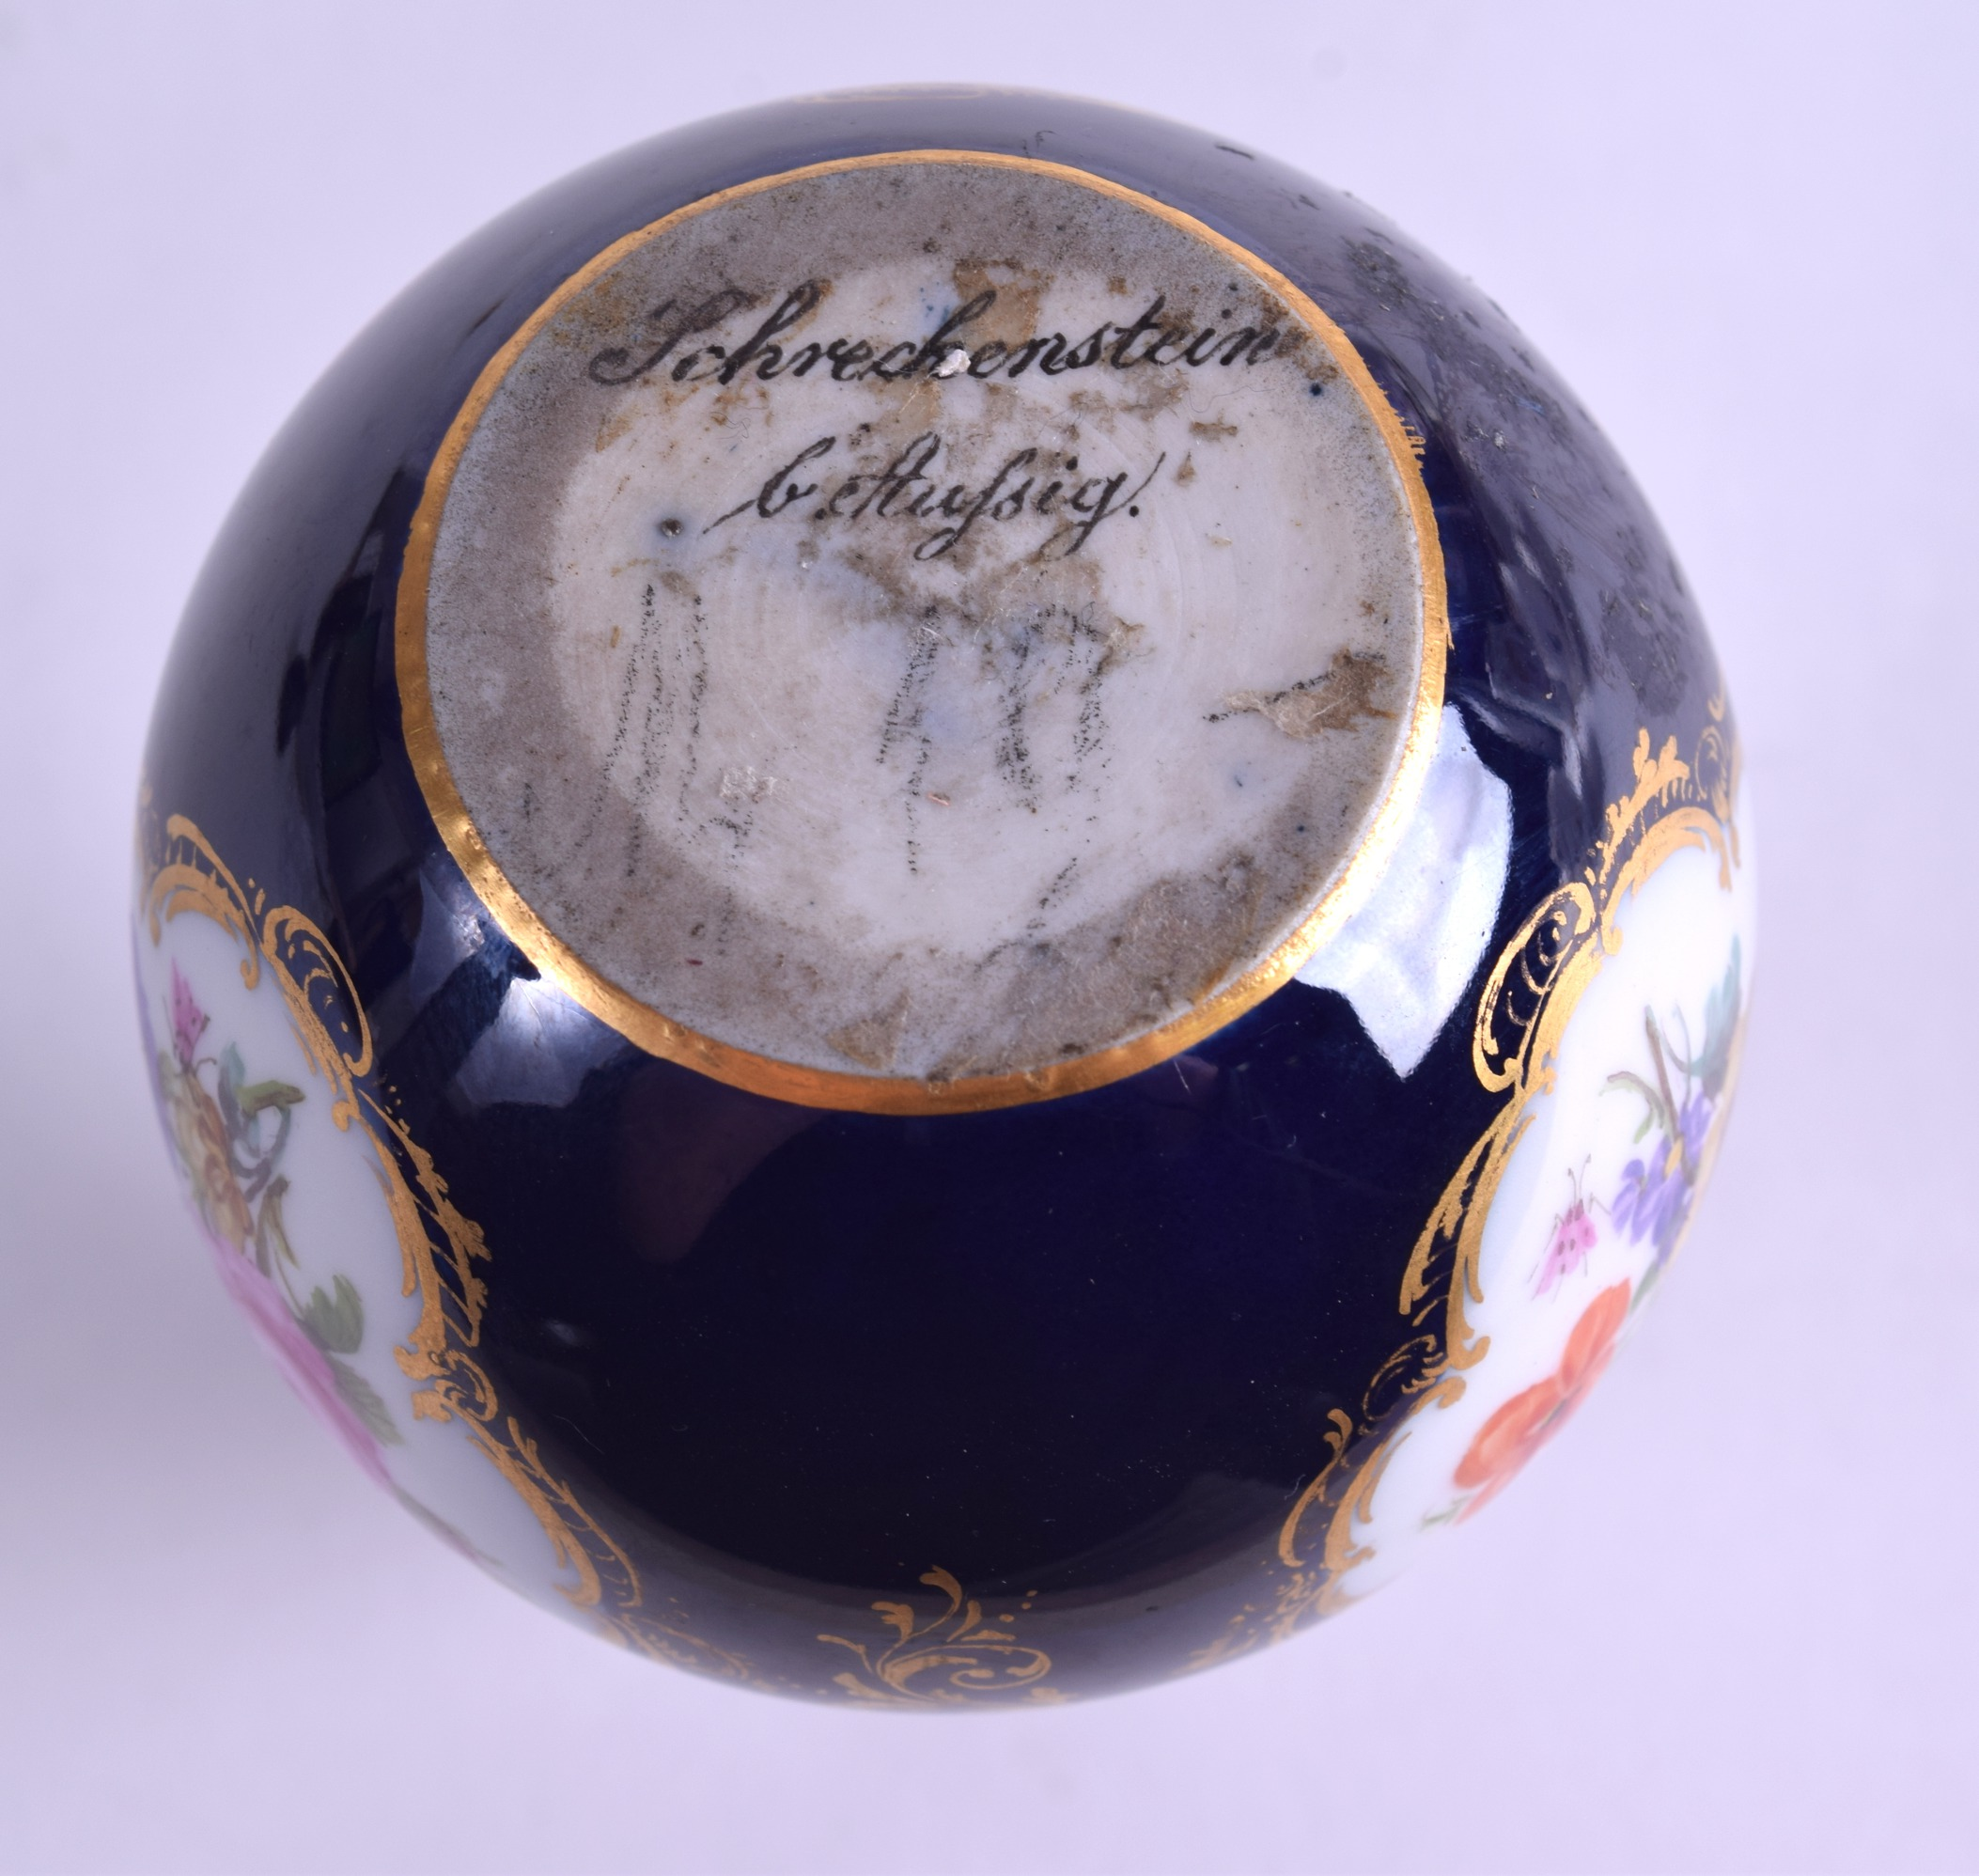 Lot 94 - AN EARLY 19TH CENTURY MEISSEN PORCELAIN DOUBLE GOURD VASE AND COVER painted with river landscapes.